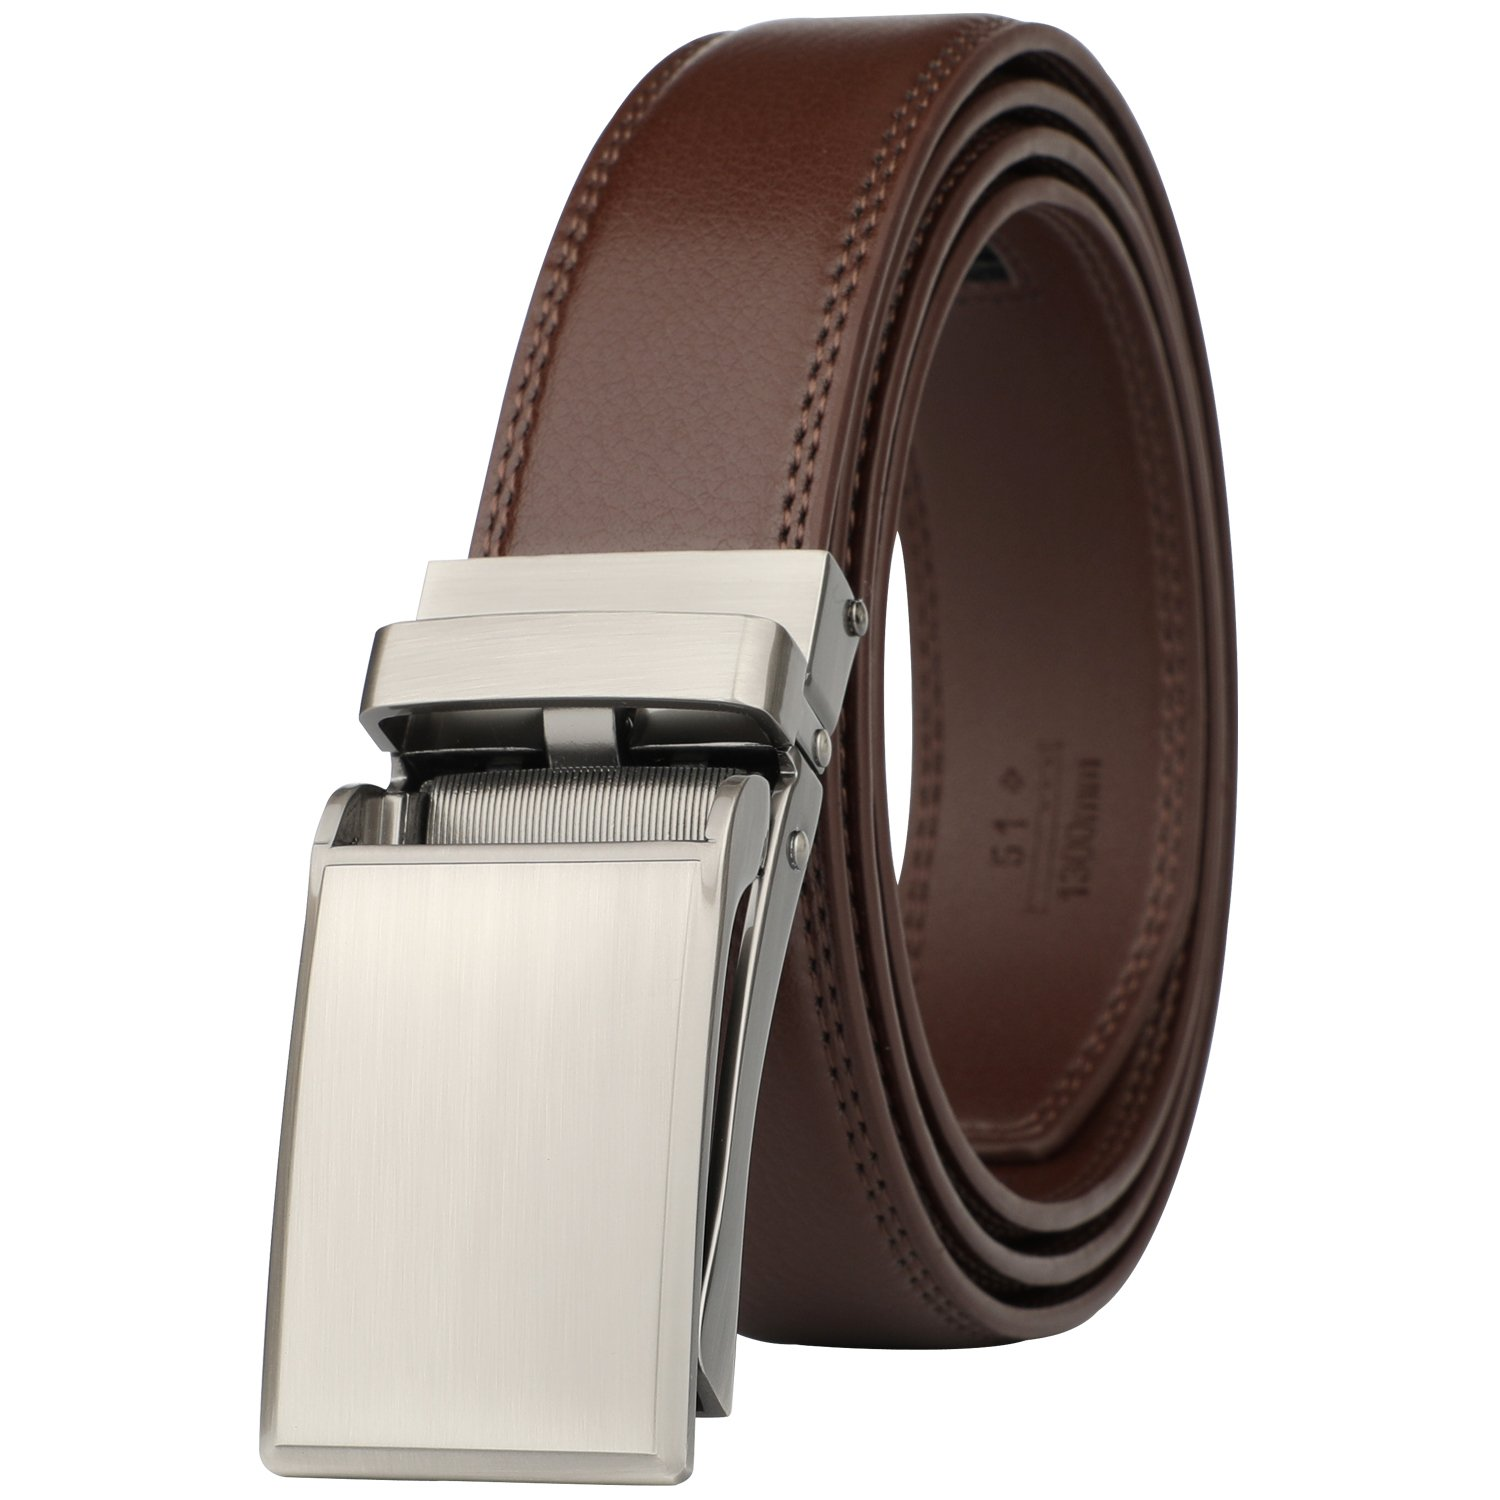 Dante men's Ratchet Click Slide Dress Belt with Genuine Leather,Trim to Fit(55-1766 Brown) by Dante